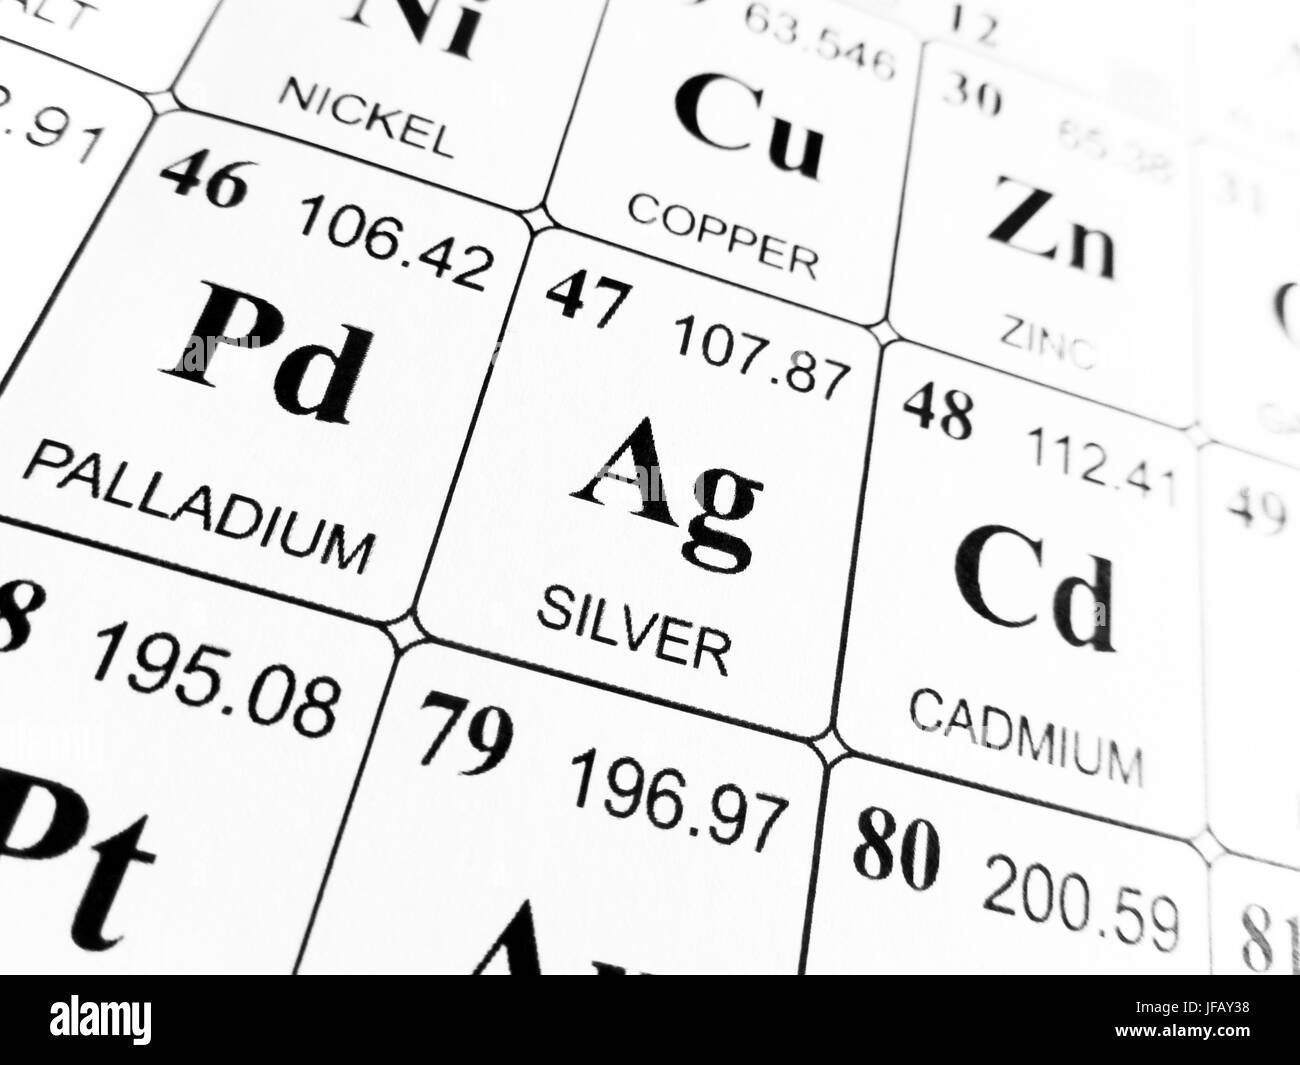 Silver on the periodic table of the elements stock photo royalty silver on the periodic table of the elements gamestrikefo Choice Image